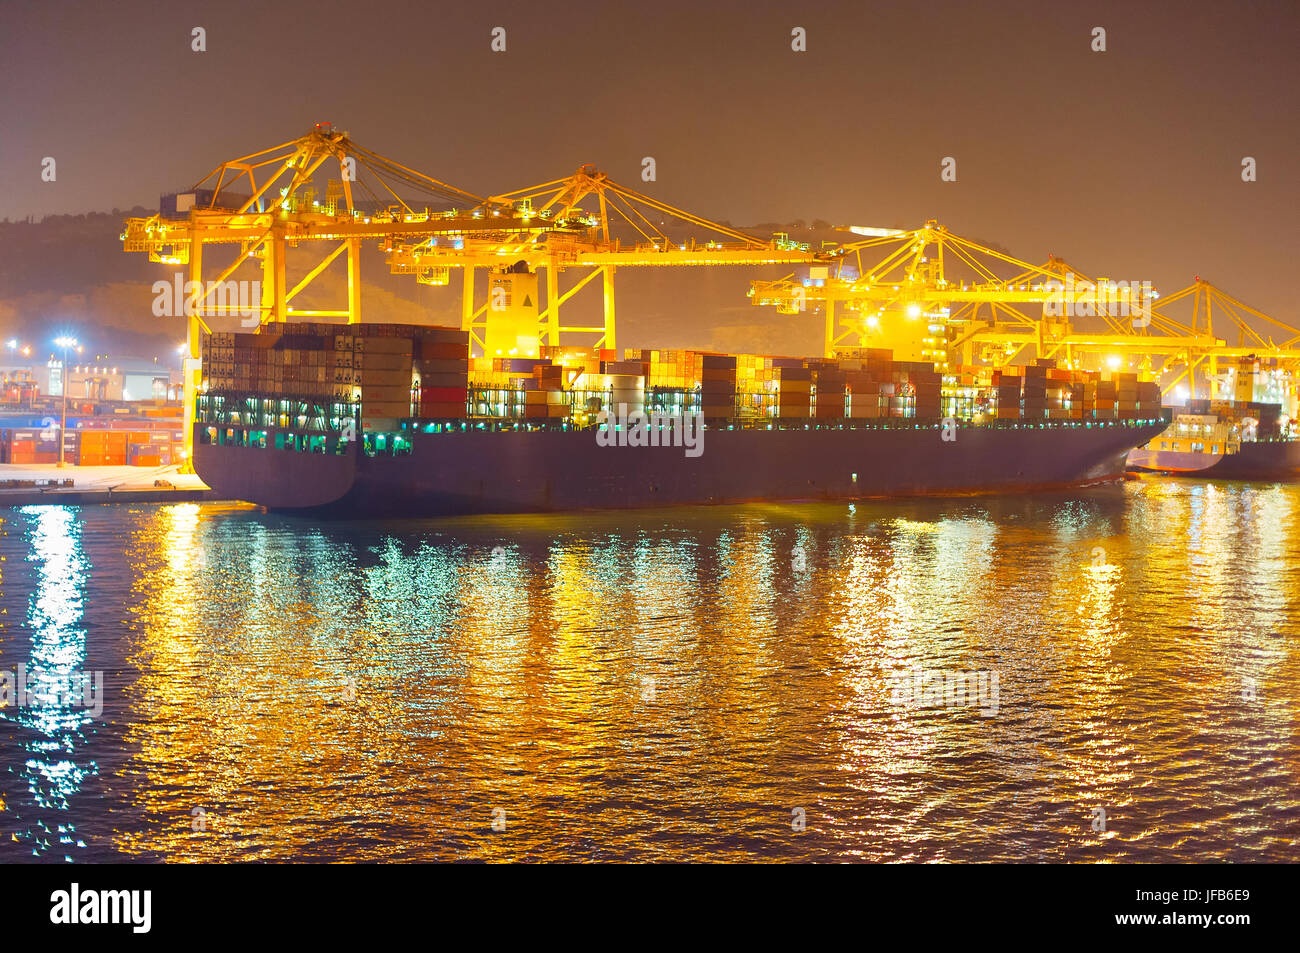 Commercial dock at night - Stock Image